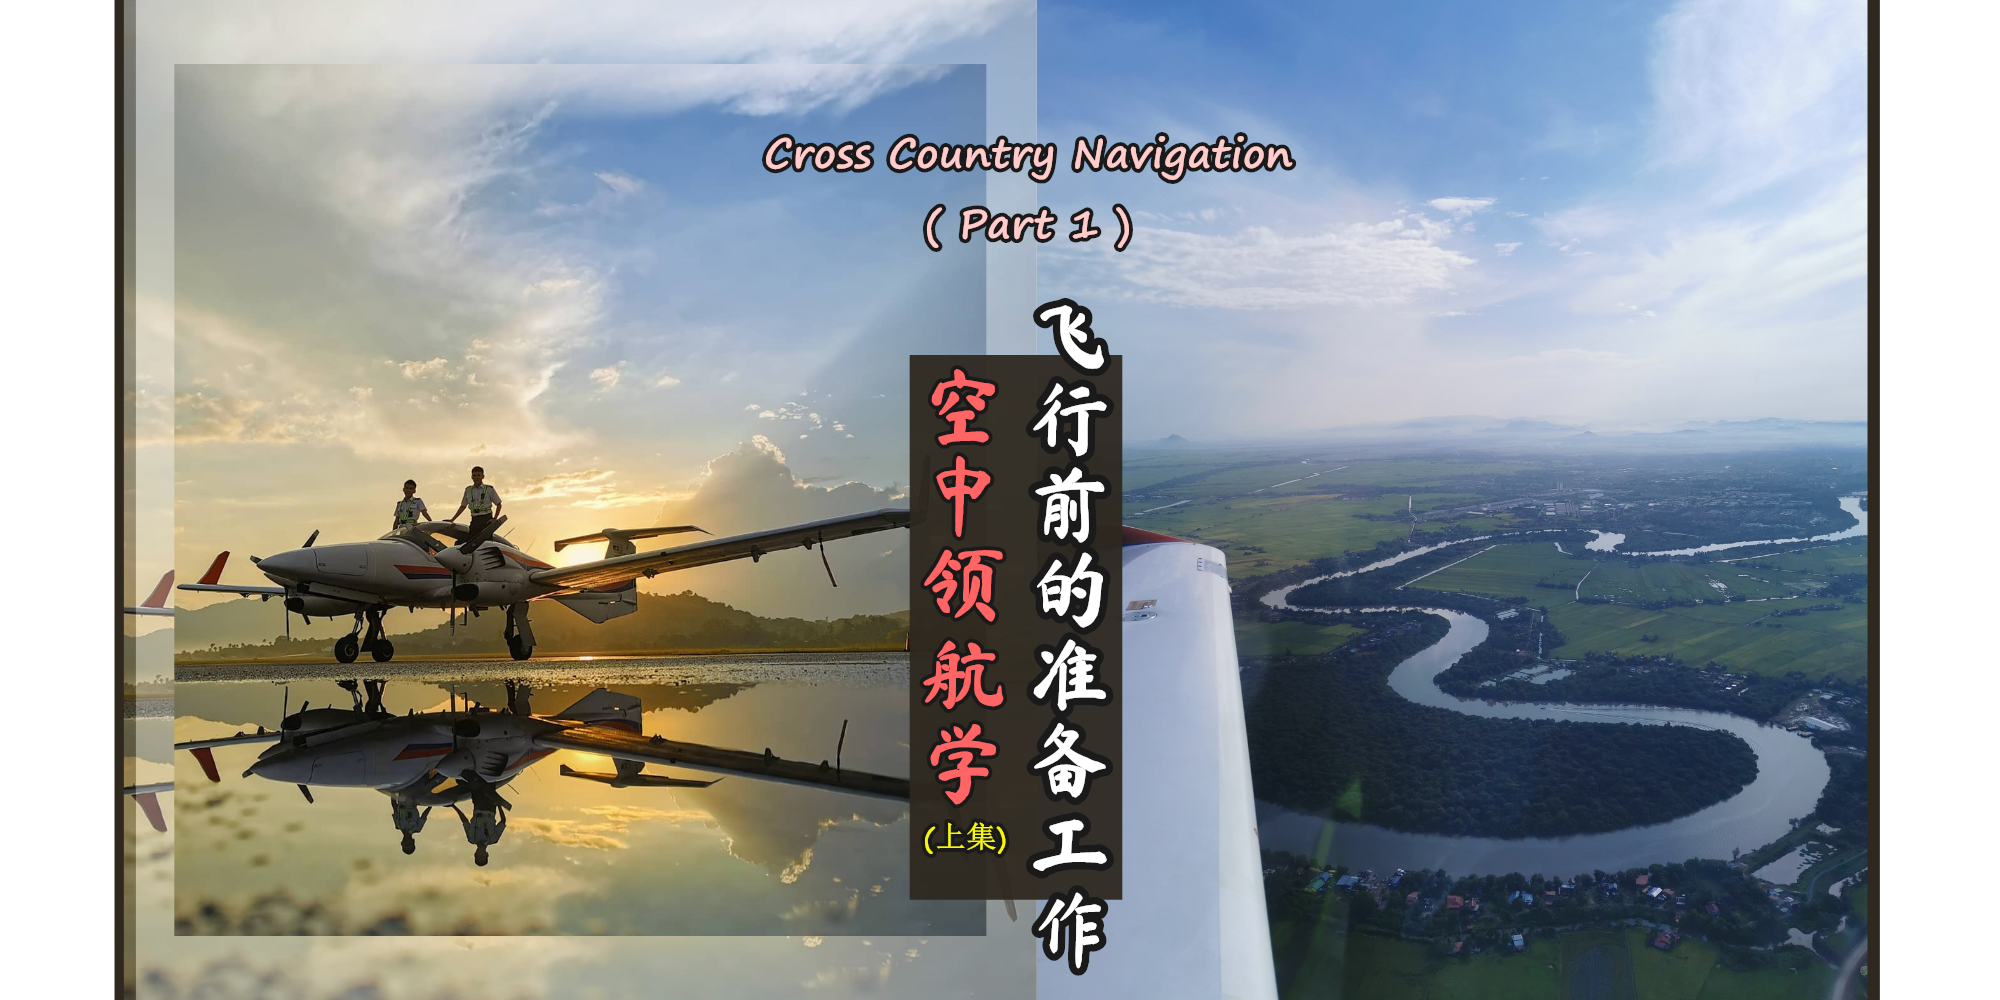 You are currently viewing 大马飞行学员开启空中领航学(Cross Country Navigation Exercises) 的事前准备工作!Part 1